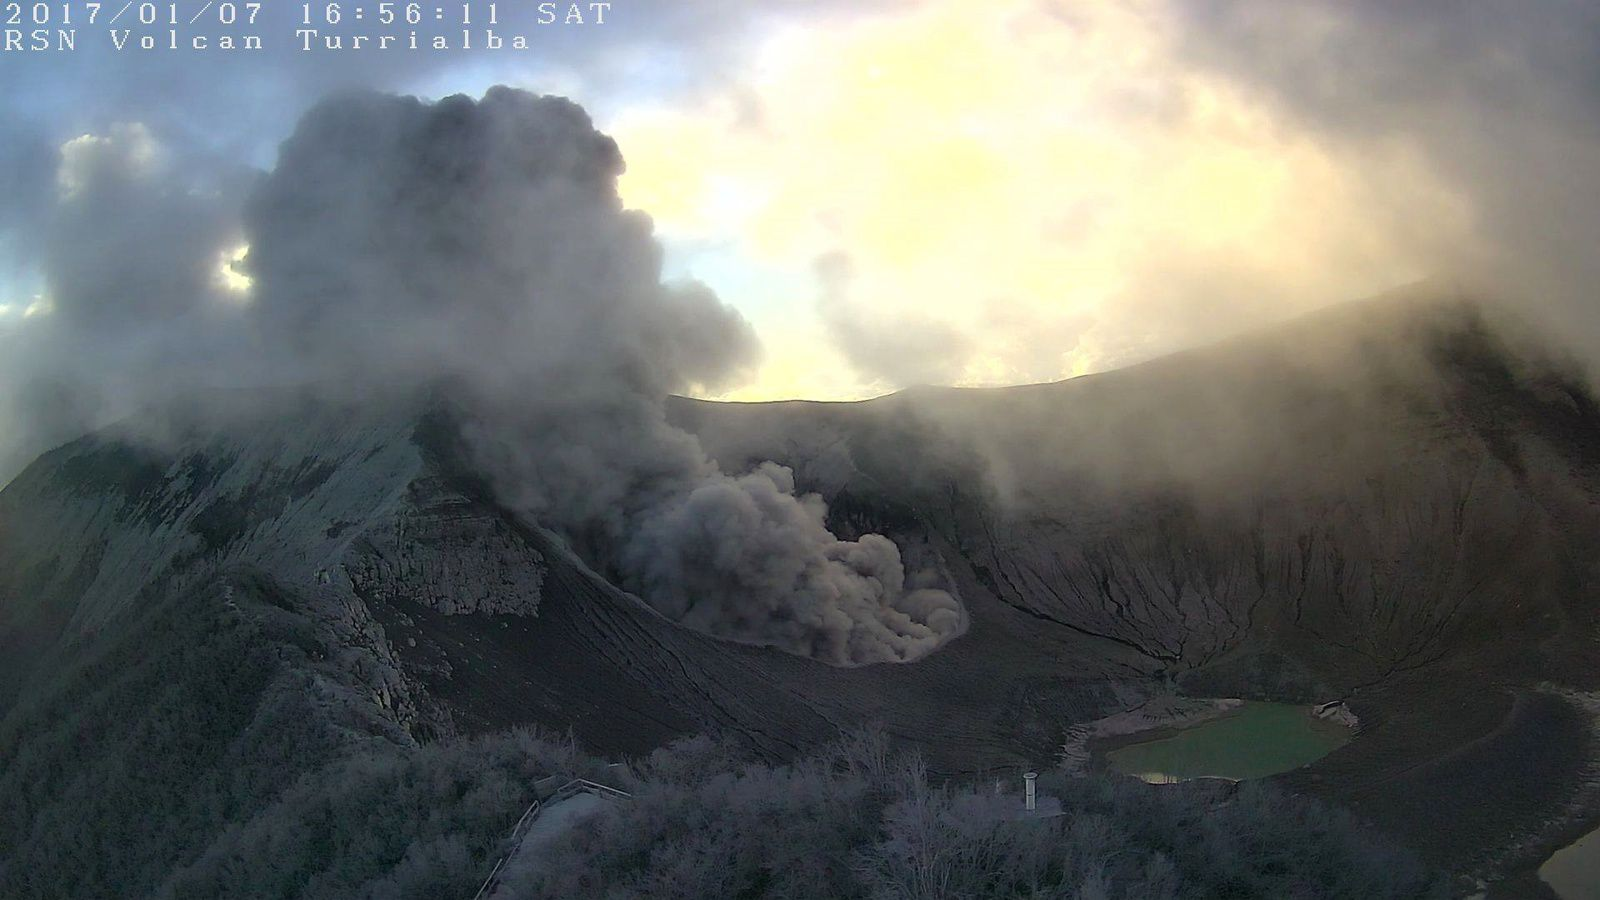 Turrialba - 07.01.2017 / 16h56 - webcam RSN